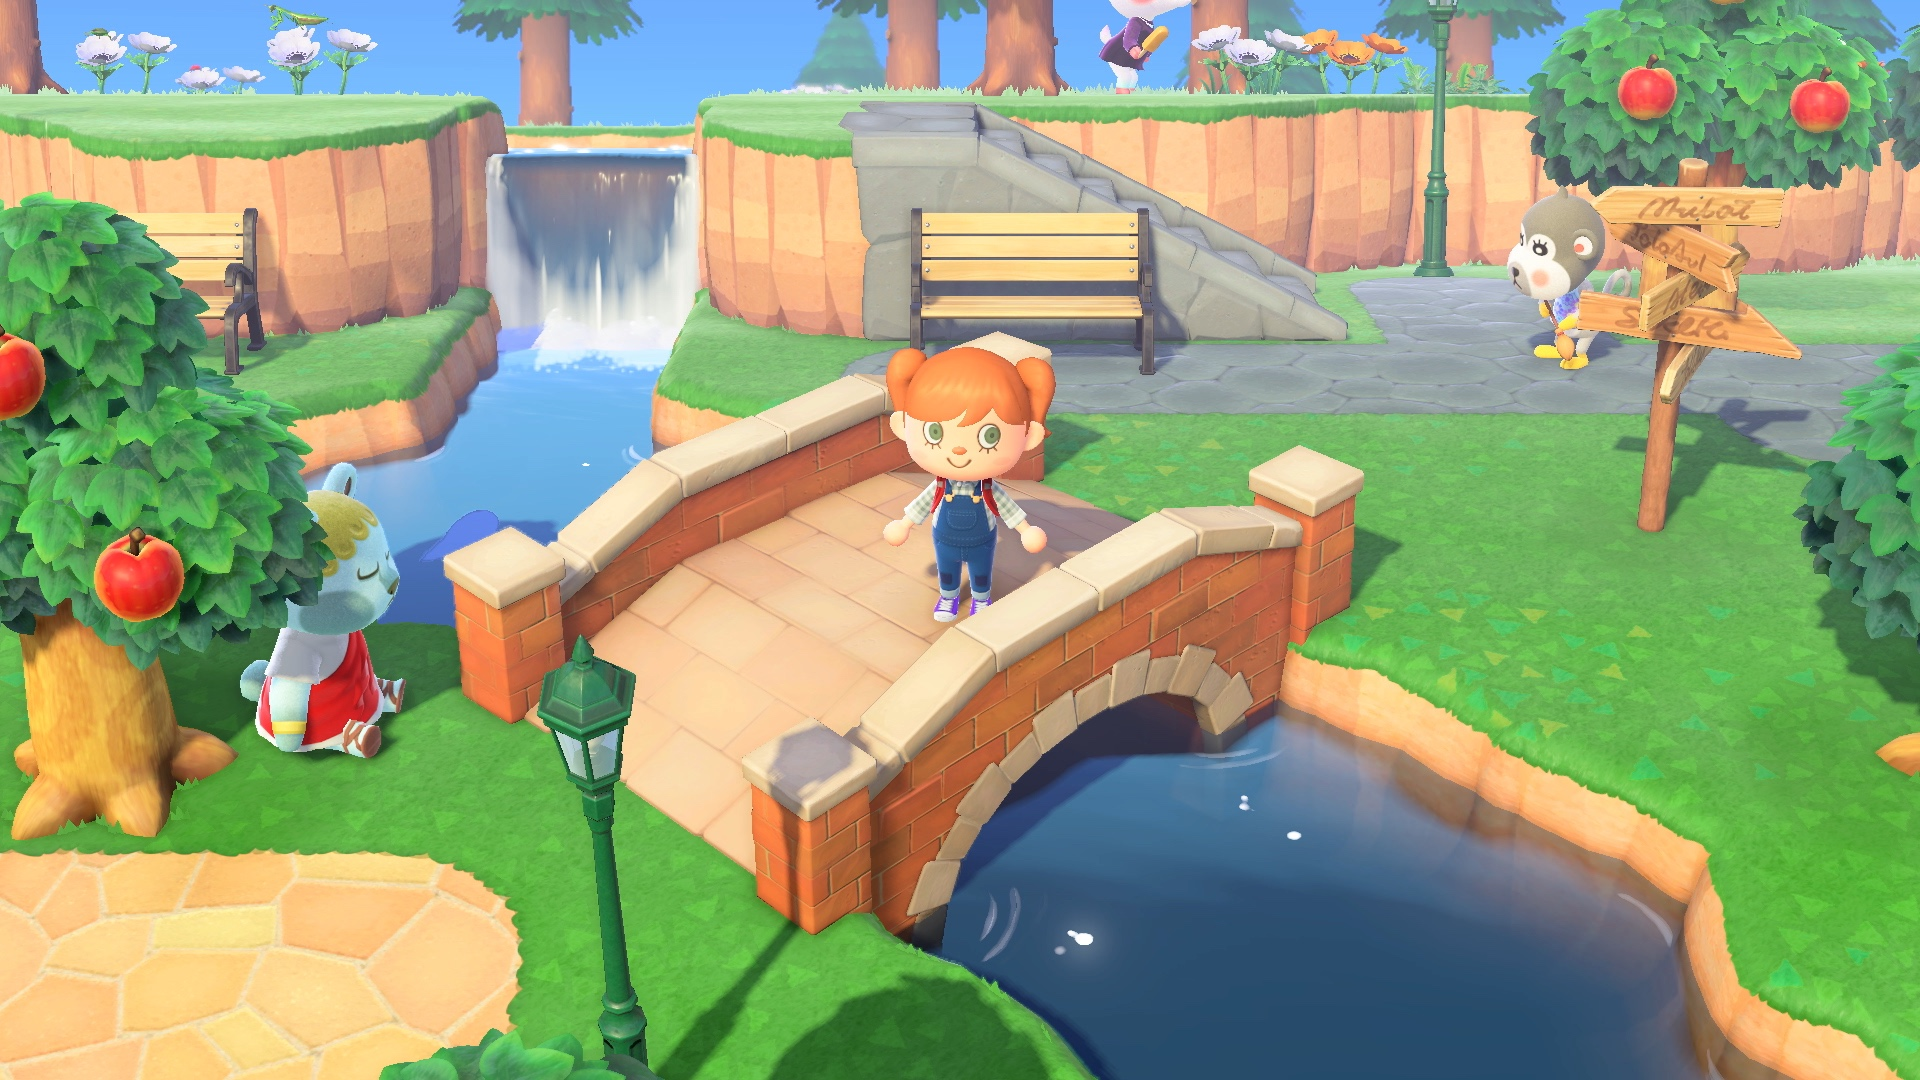 A villager stands on a stone bridge in a screenshot from Animal Crossing: New Horizons